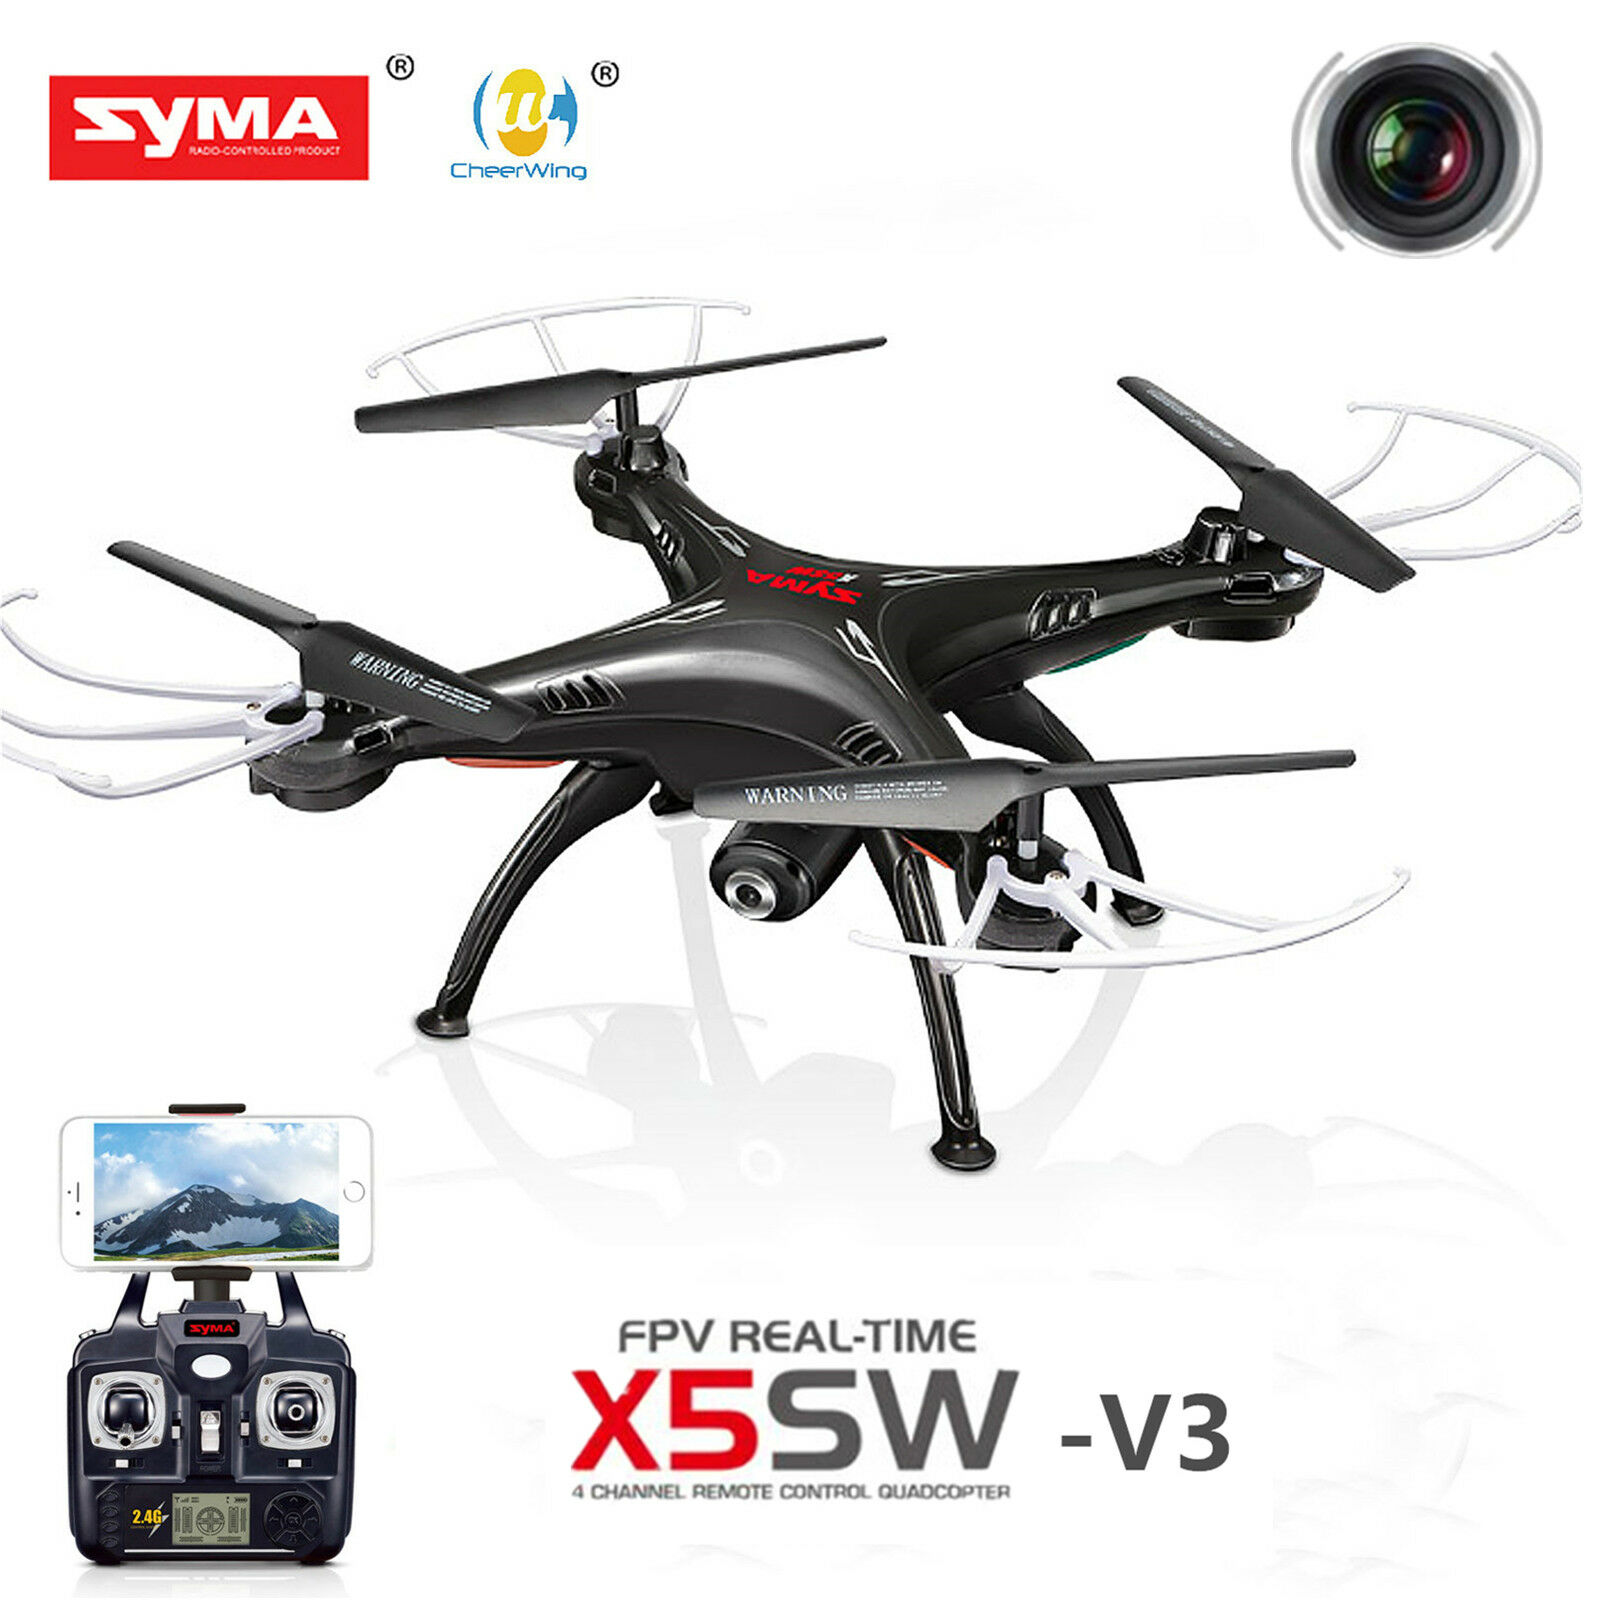 Syma X5SW-V3 Wifi Explorers 2.4G RC Headless Quadcopter  Drones with HD teletelecamera  vendita calda online